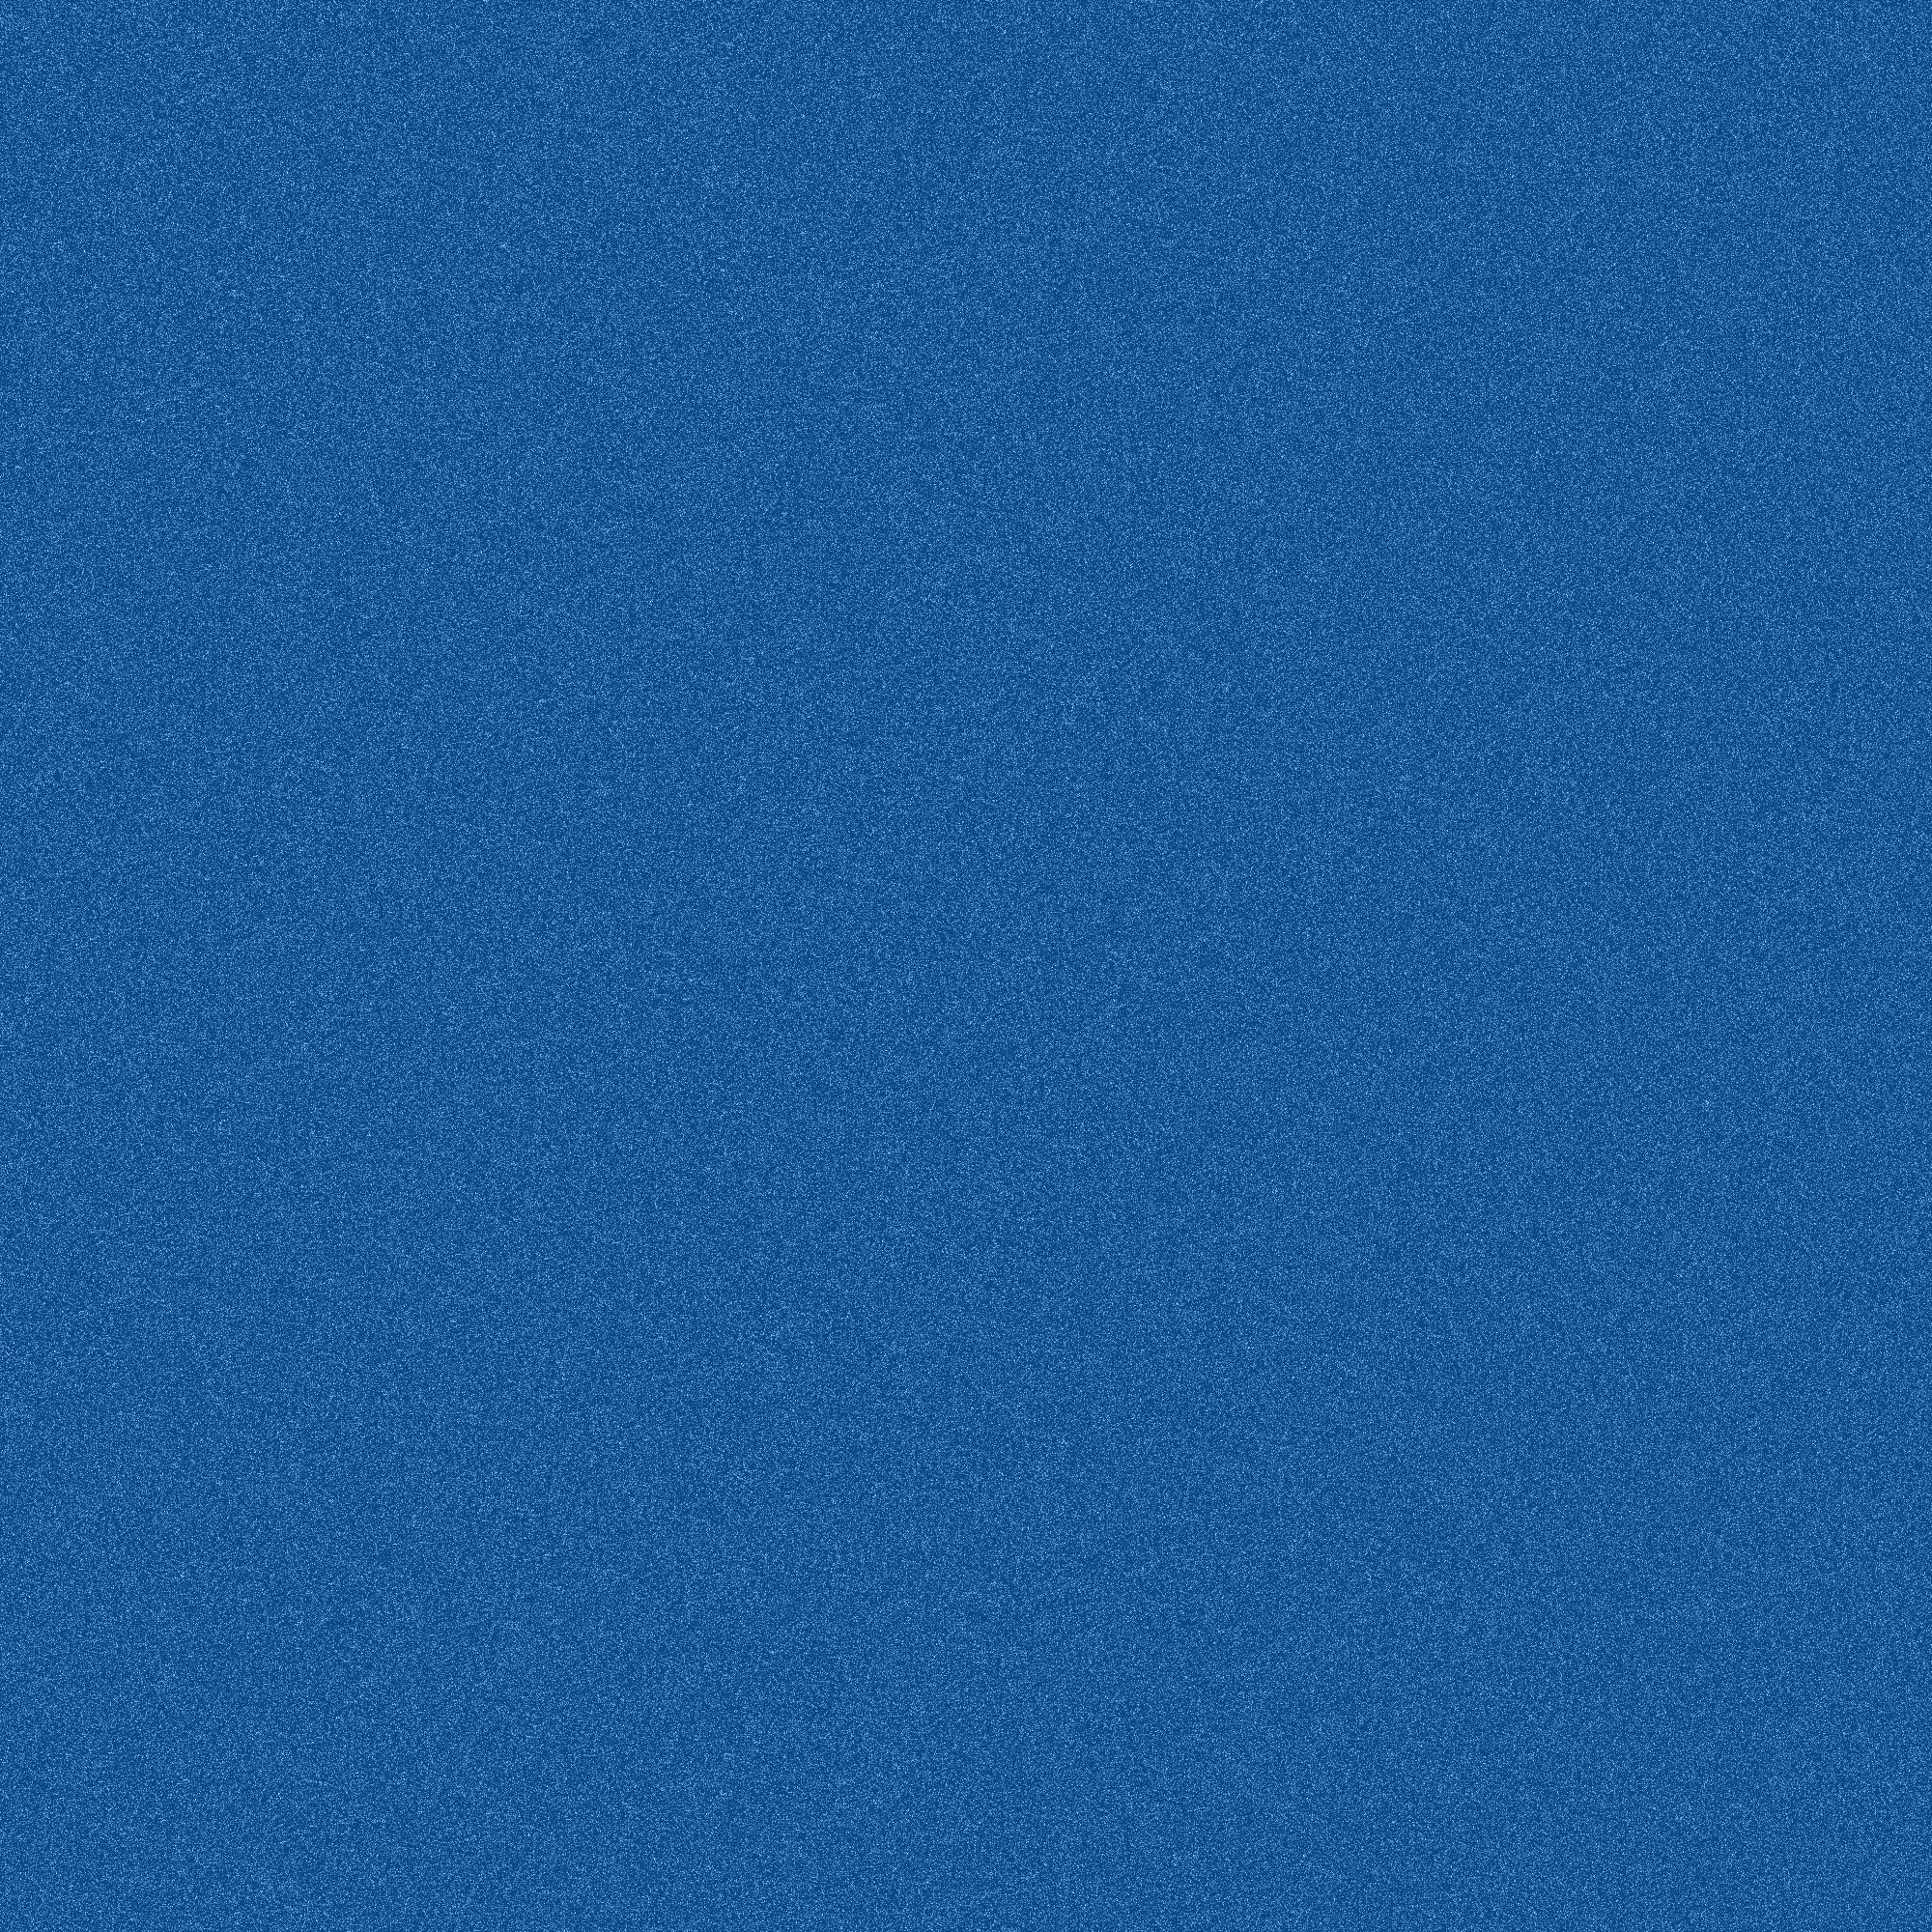 noize_background_blue